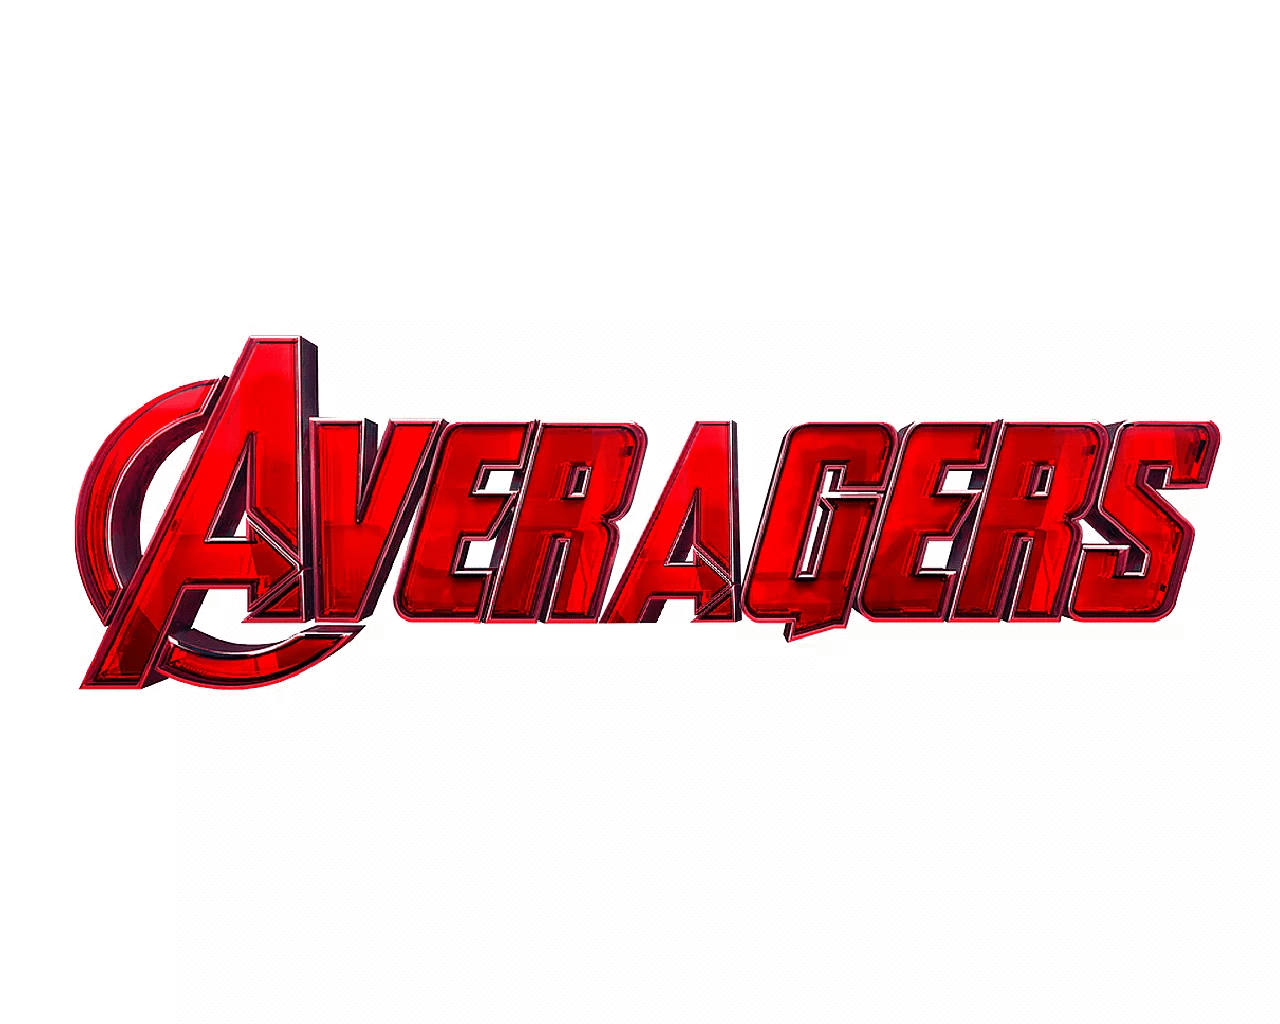 Averagers